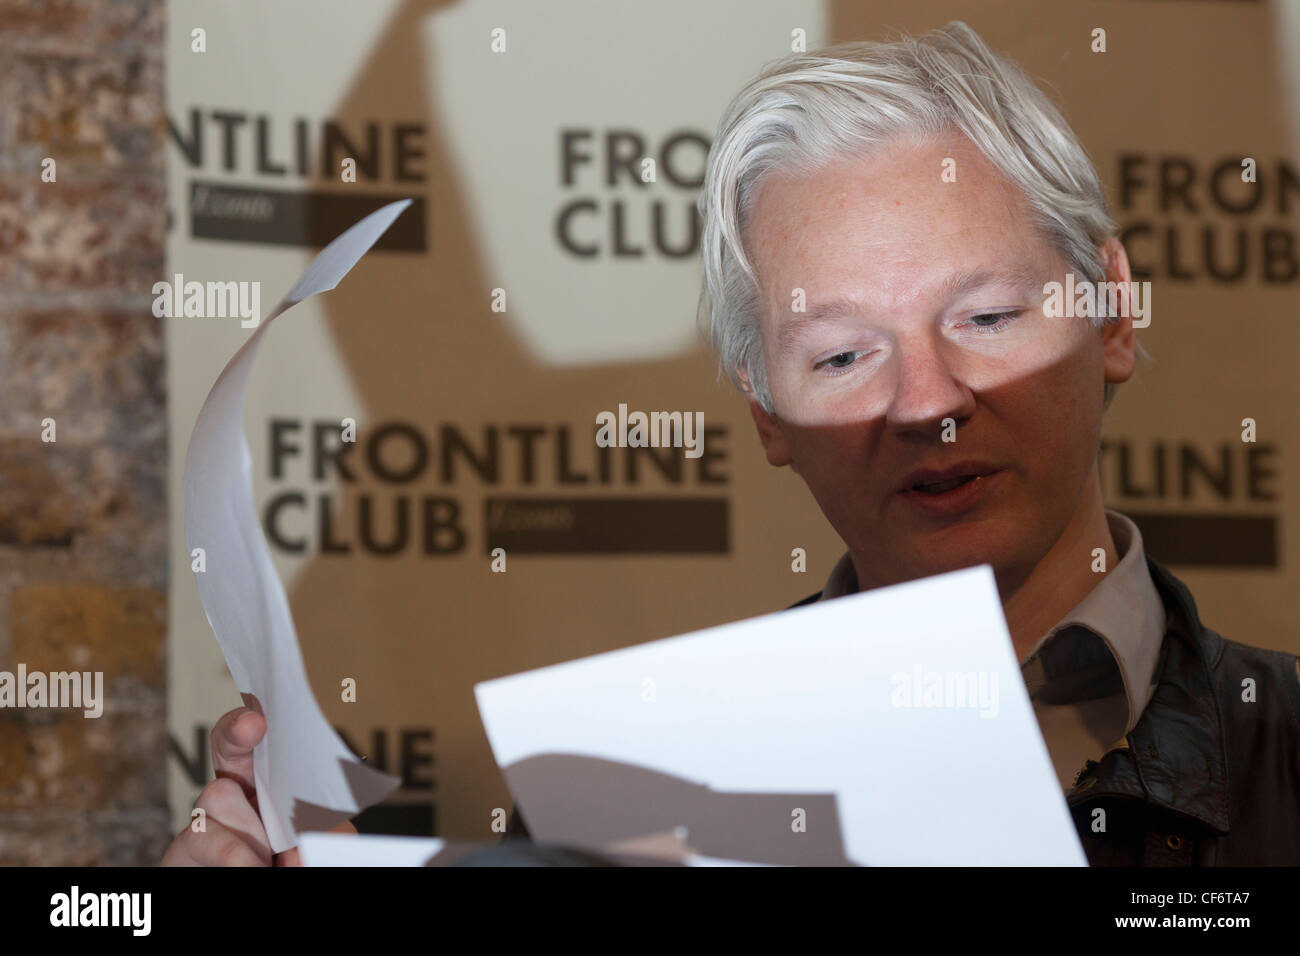 Julian Assange Wikileaks founder is seen during a press conference at The Frontline Club London - Stock Image